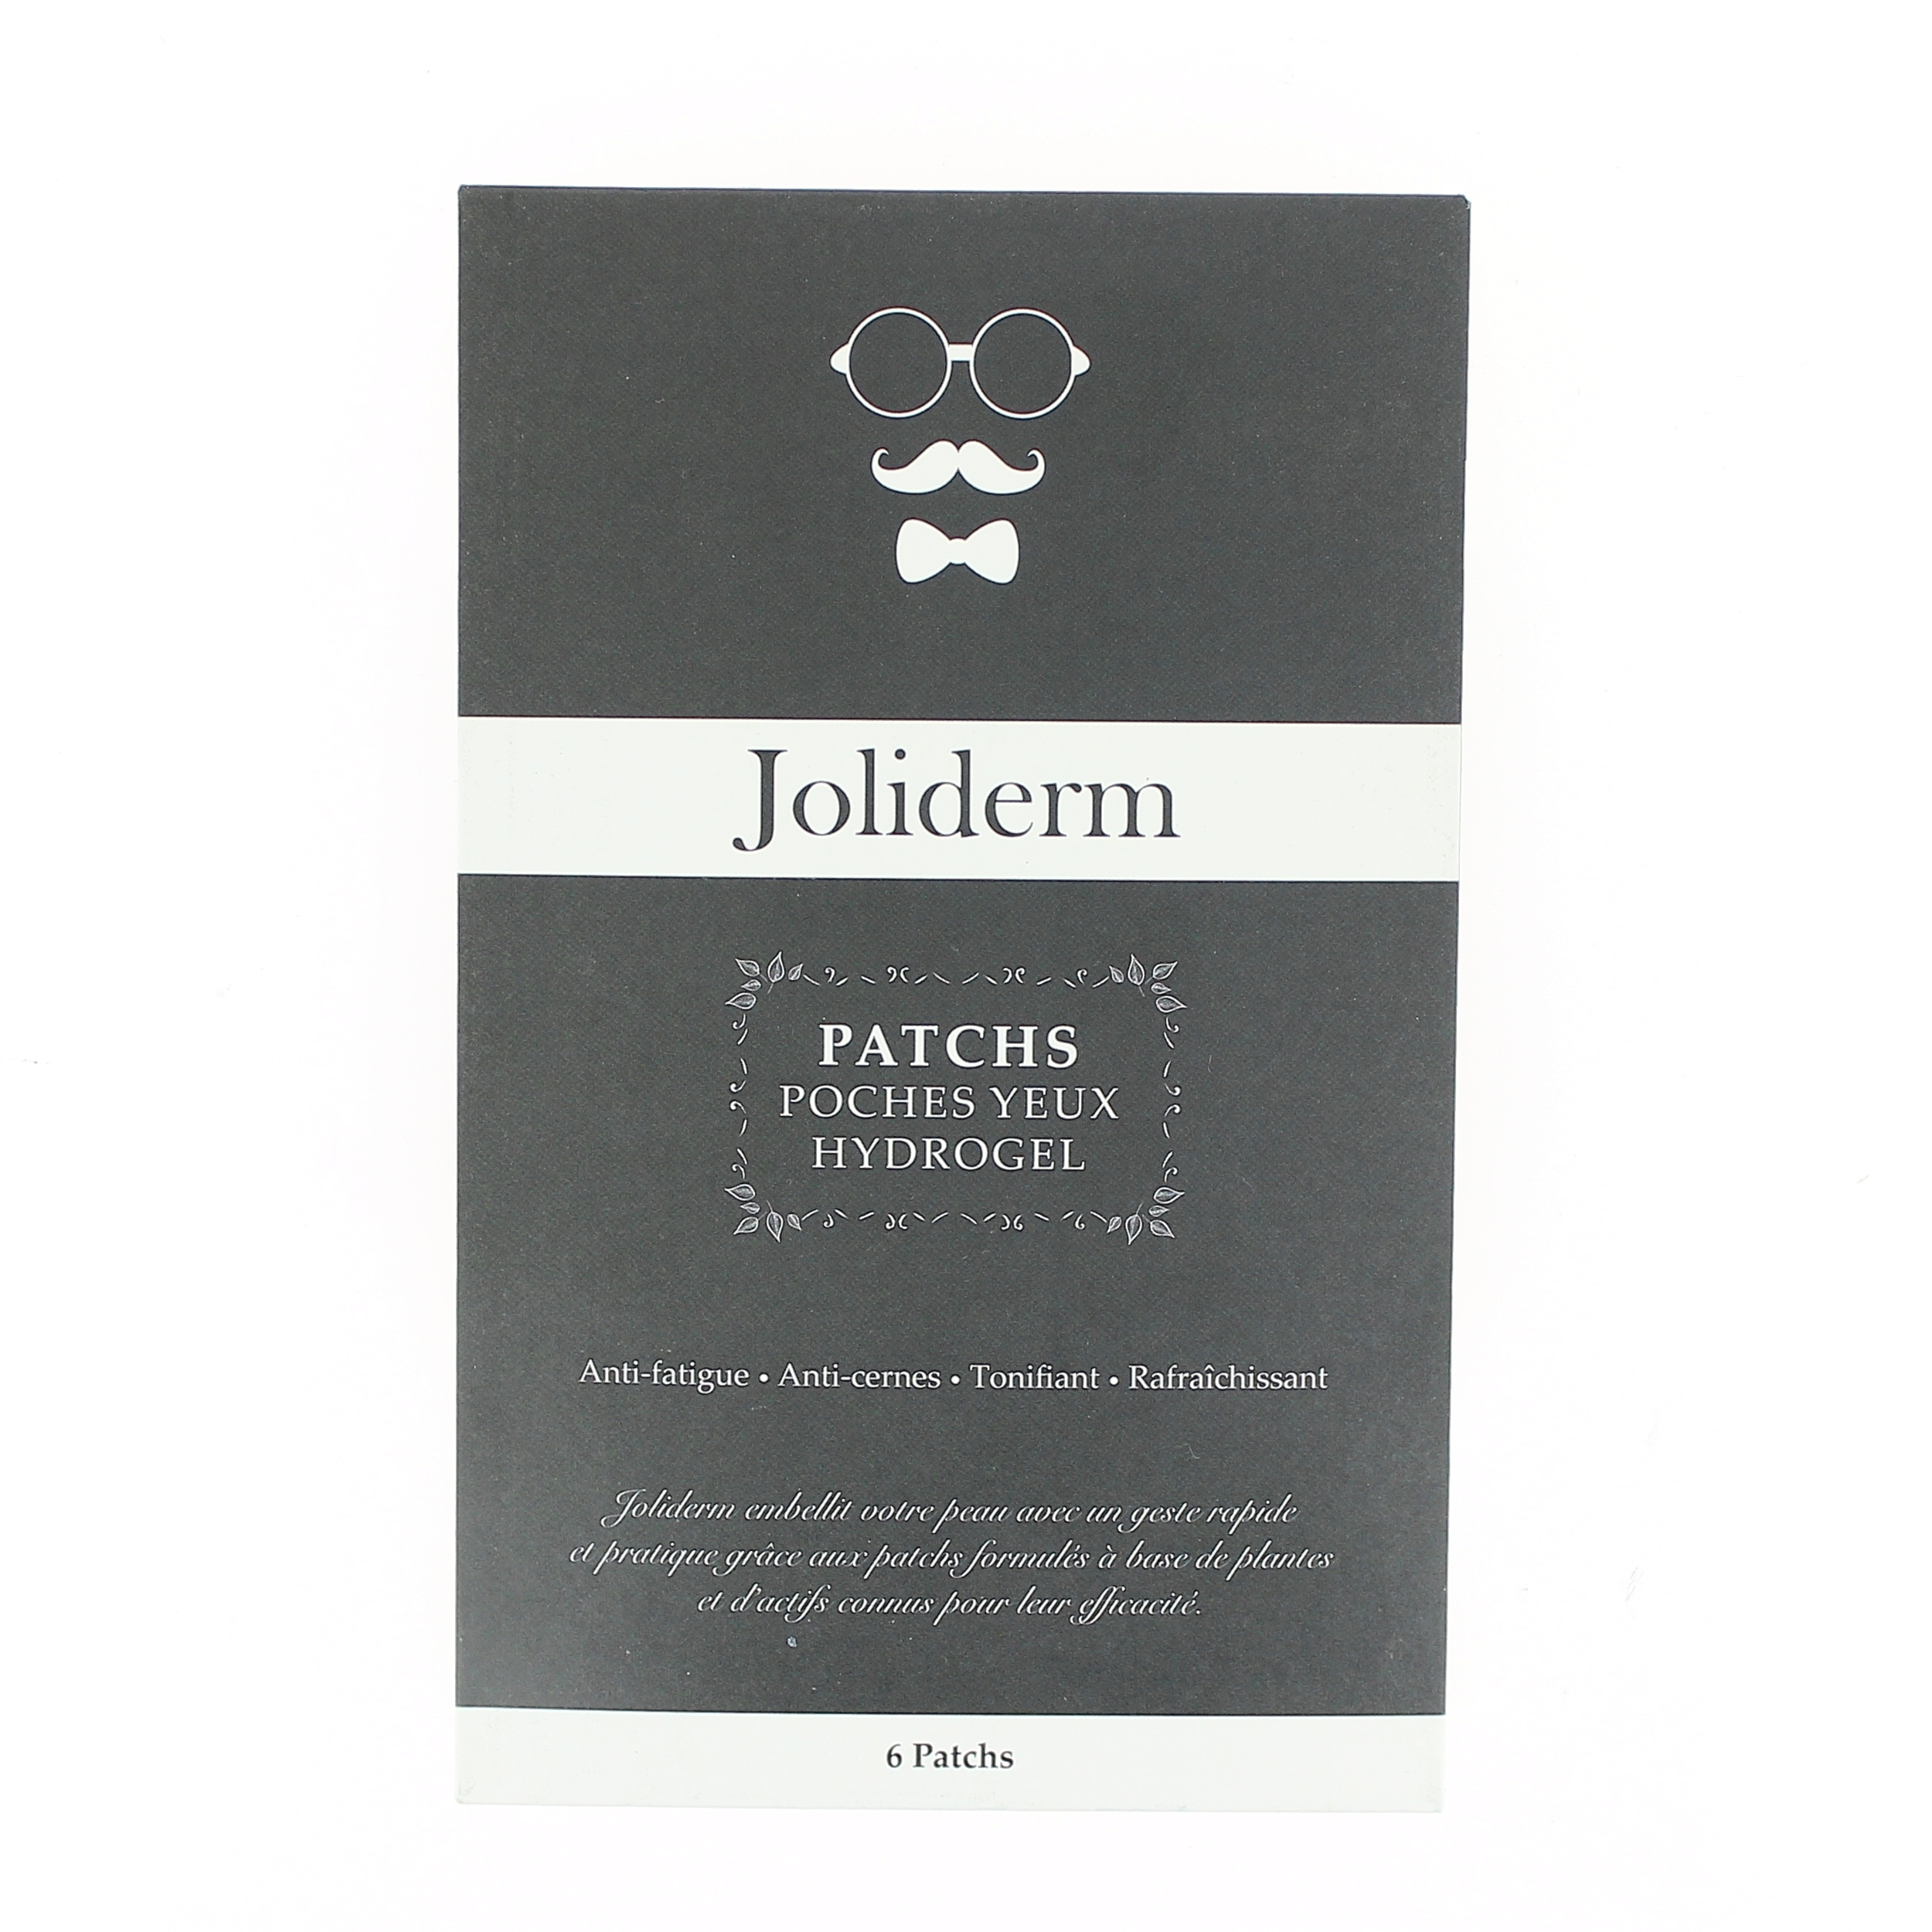 Doux Good - Joliderm- patch poches yeux hydrogel Homme